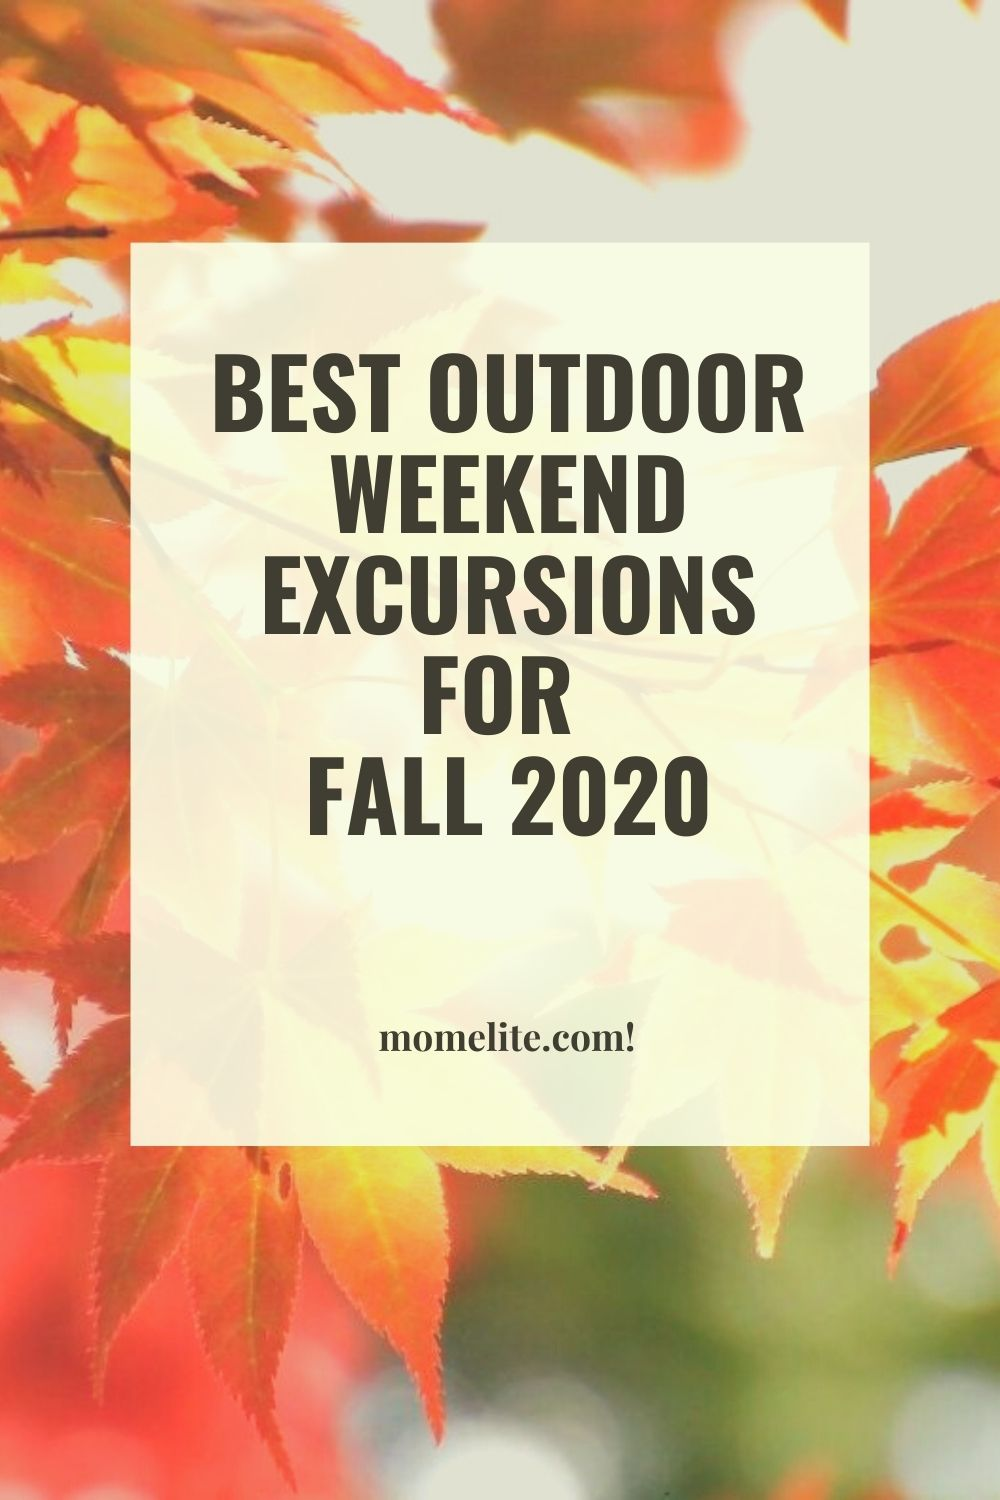 BEST OUTDOOR WEEKEND EXCURSIONS FOR FALL 2020